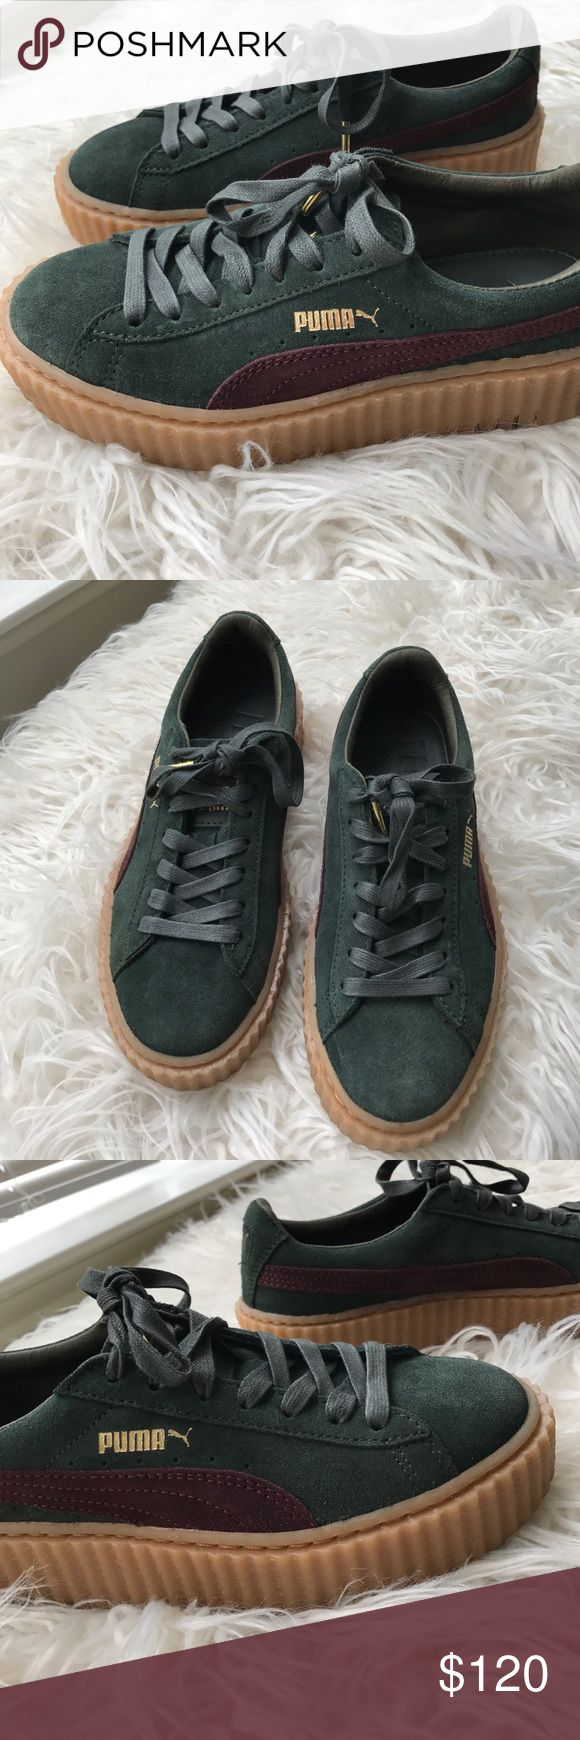 Green rihanna Creepers Only TRIED on, never wore outside!! Dark green suede creepers, so cute Puma Shoes Sneakers